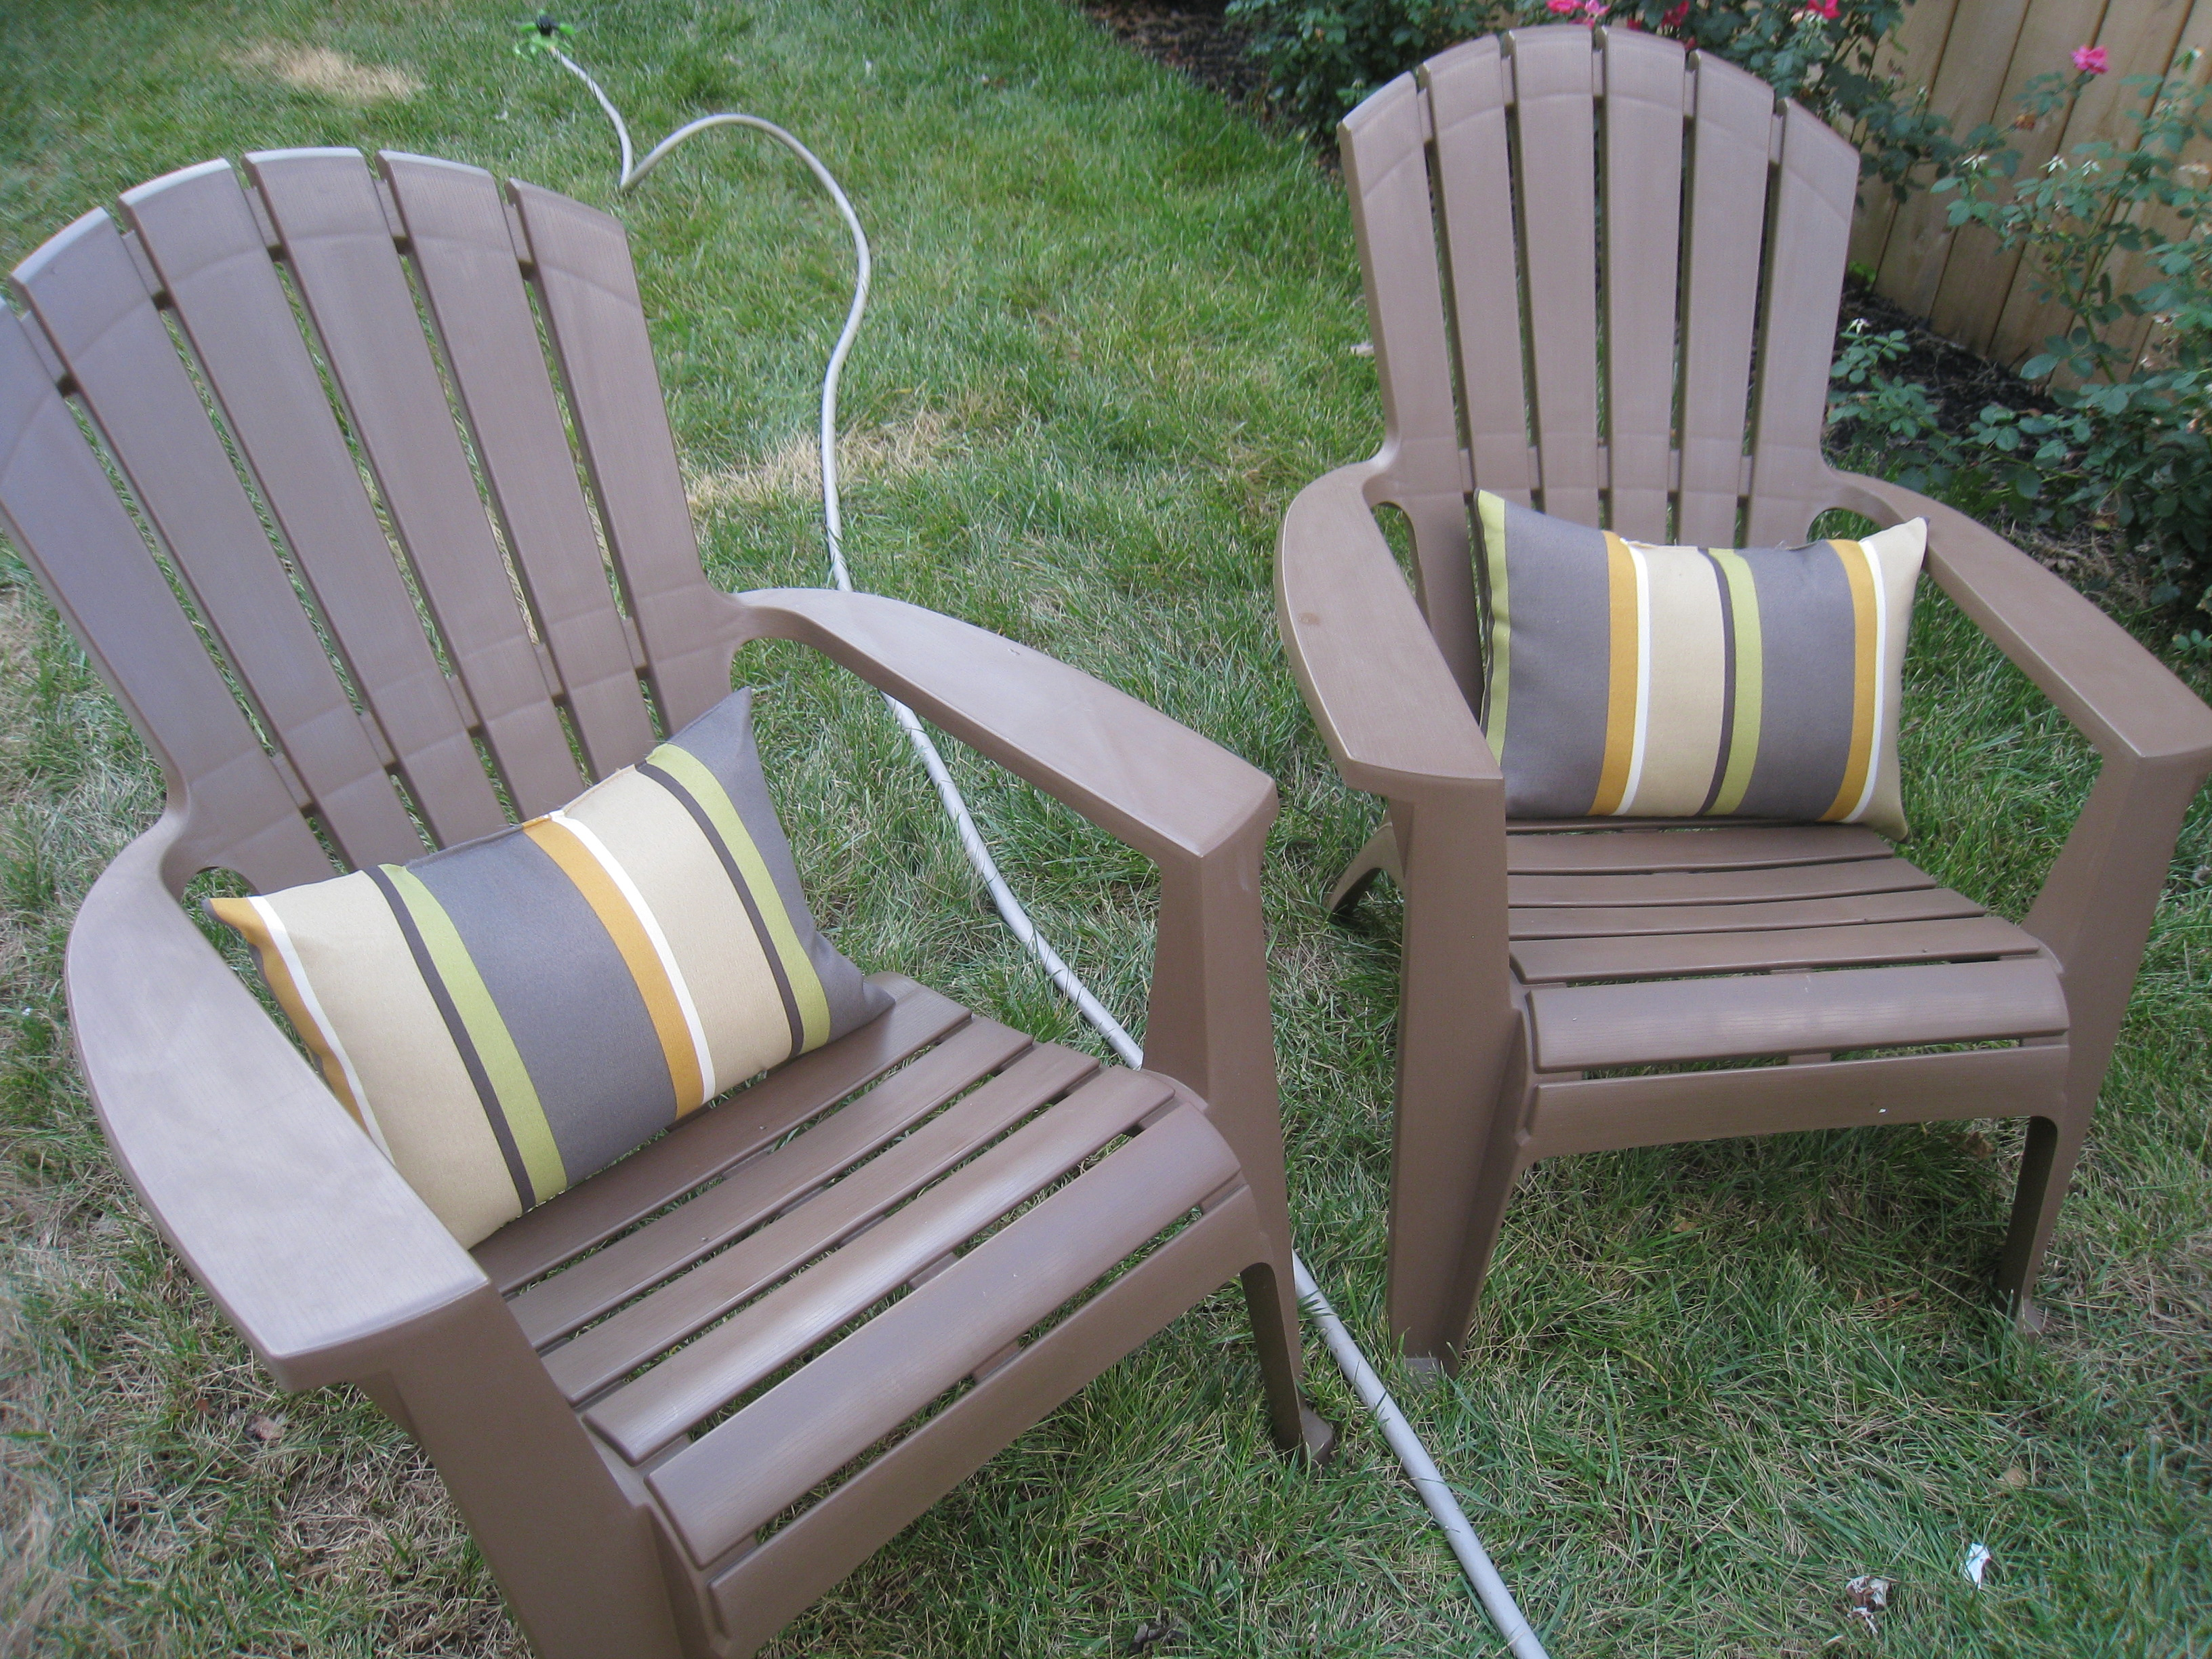 Download Diy Child S Adirondack Chair Plans Diy Do It